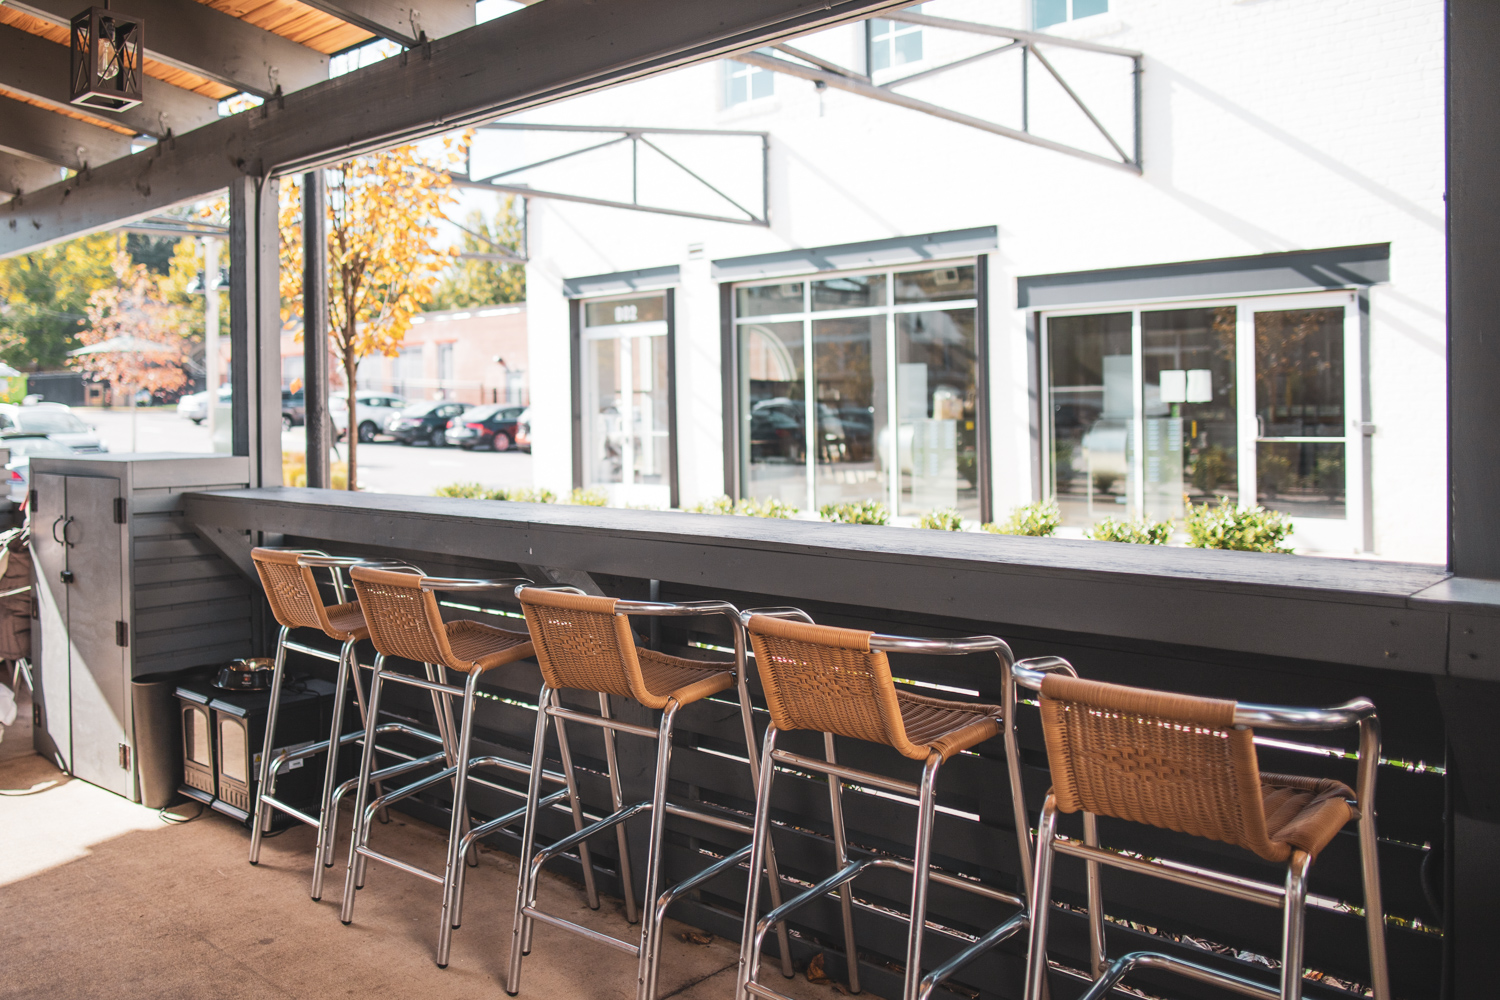 Interior of the covered patio at Full Commission. The high chairs are perfect for sipping coffee or a cocktail.